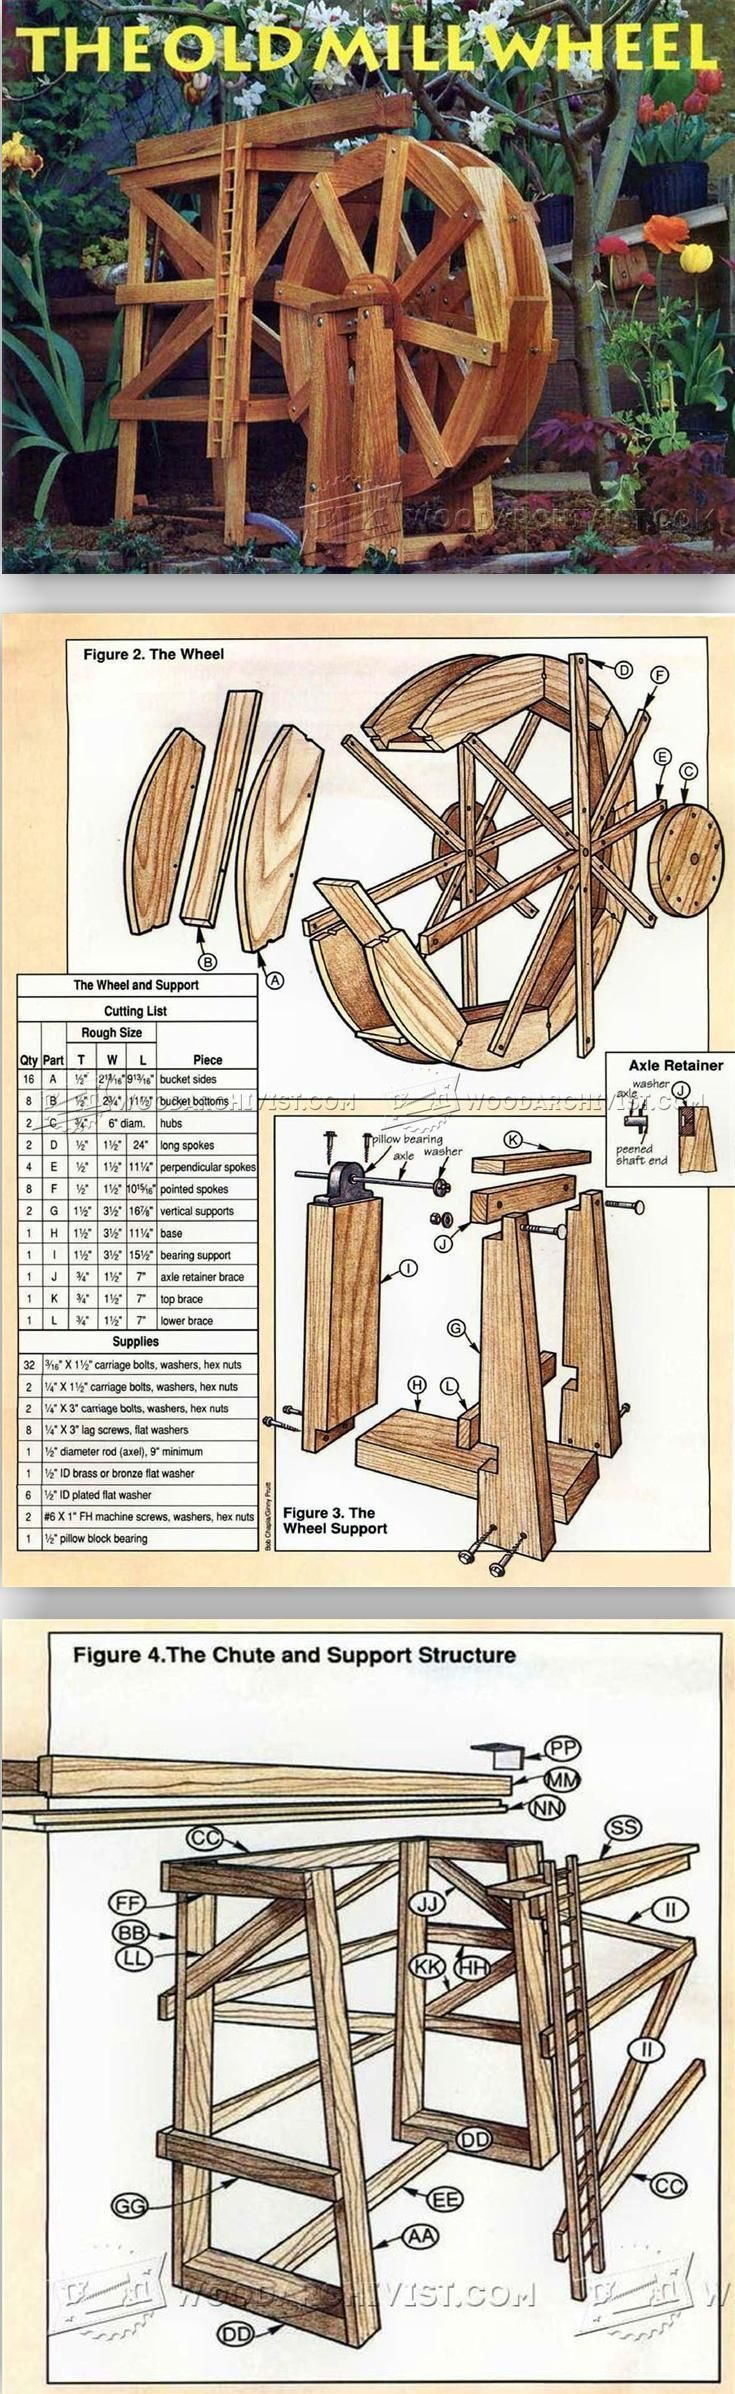 The Old Millwheel - Outdoor Plans and Projects | http://WoodArchivist.com